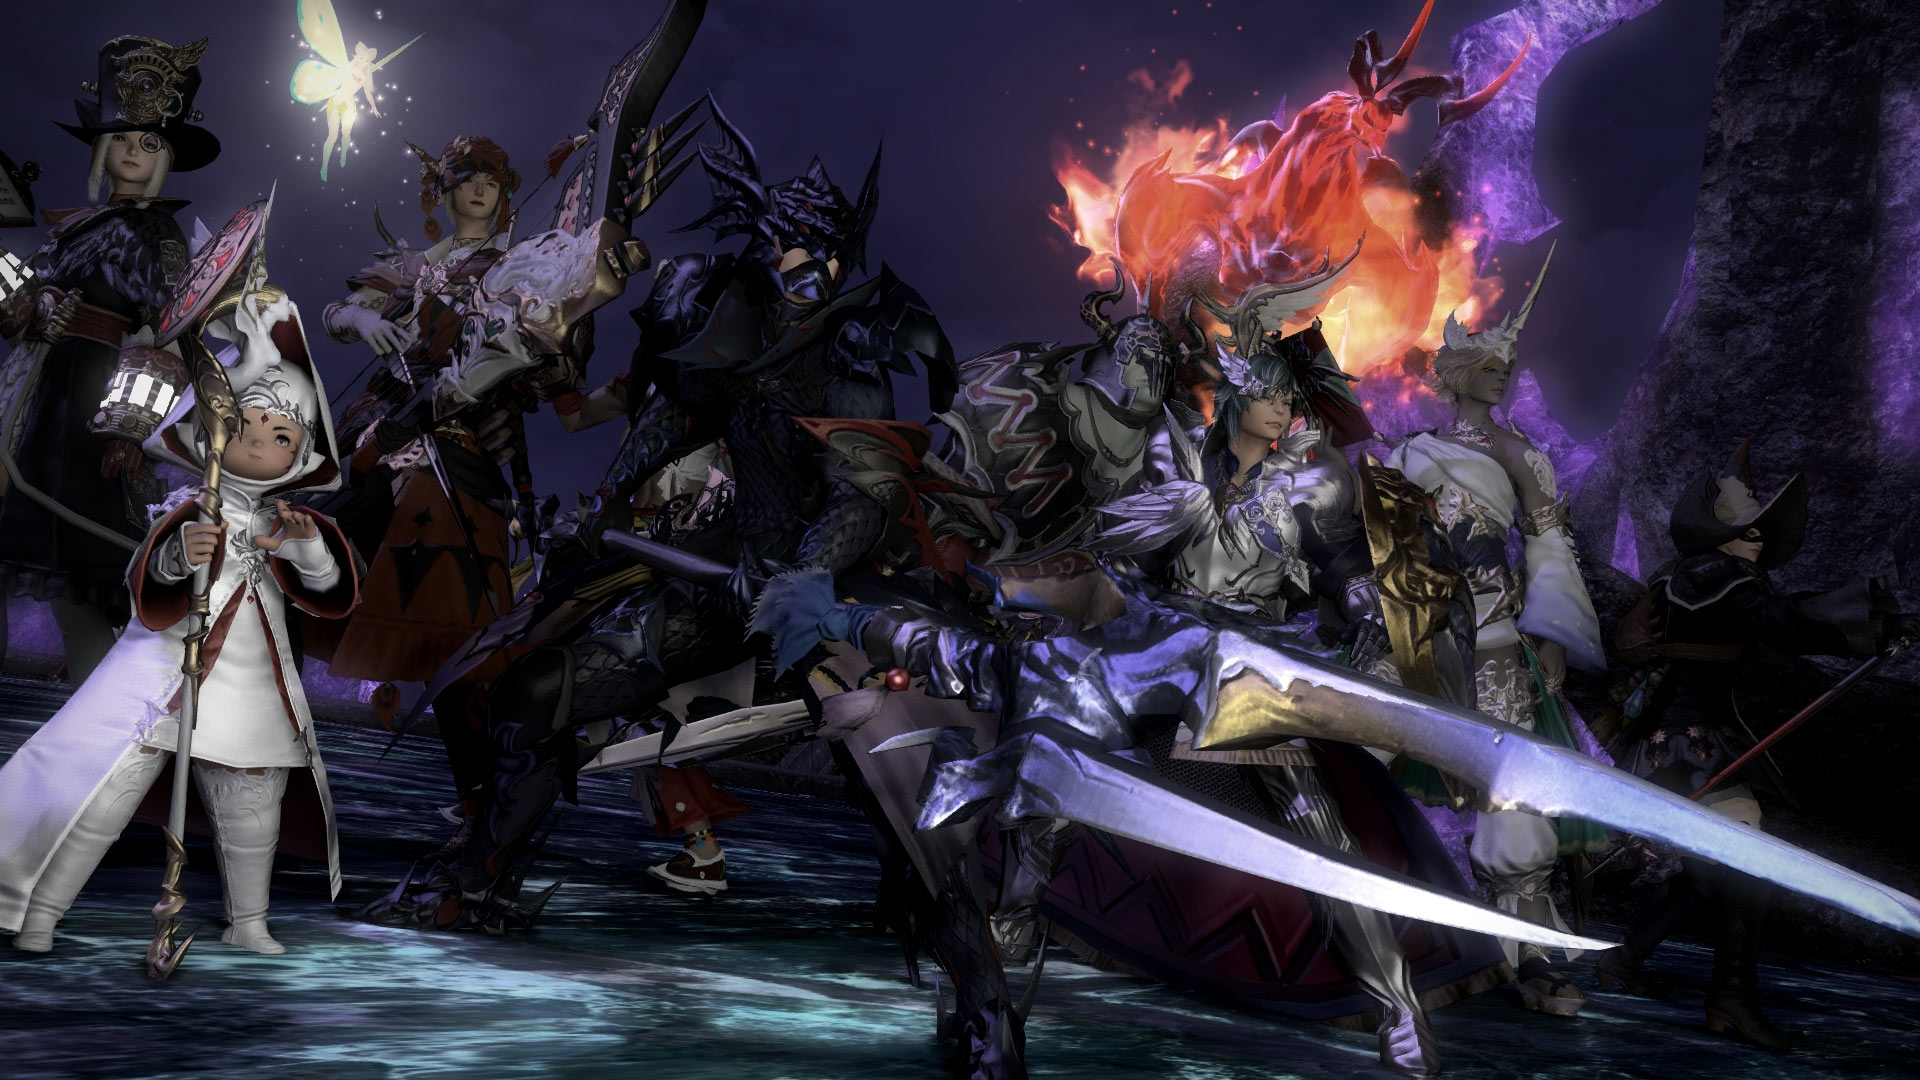 final fantasy 14 free to play restrictions